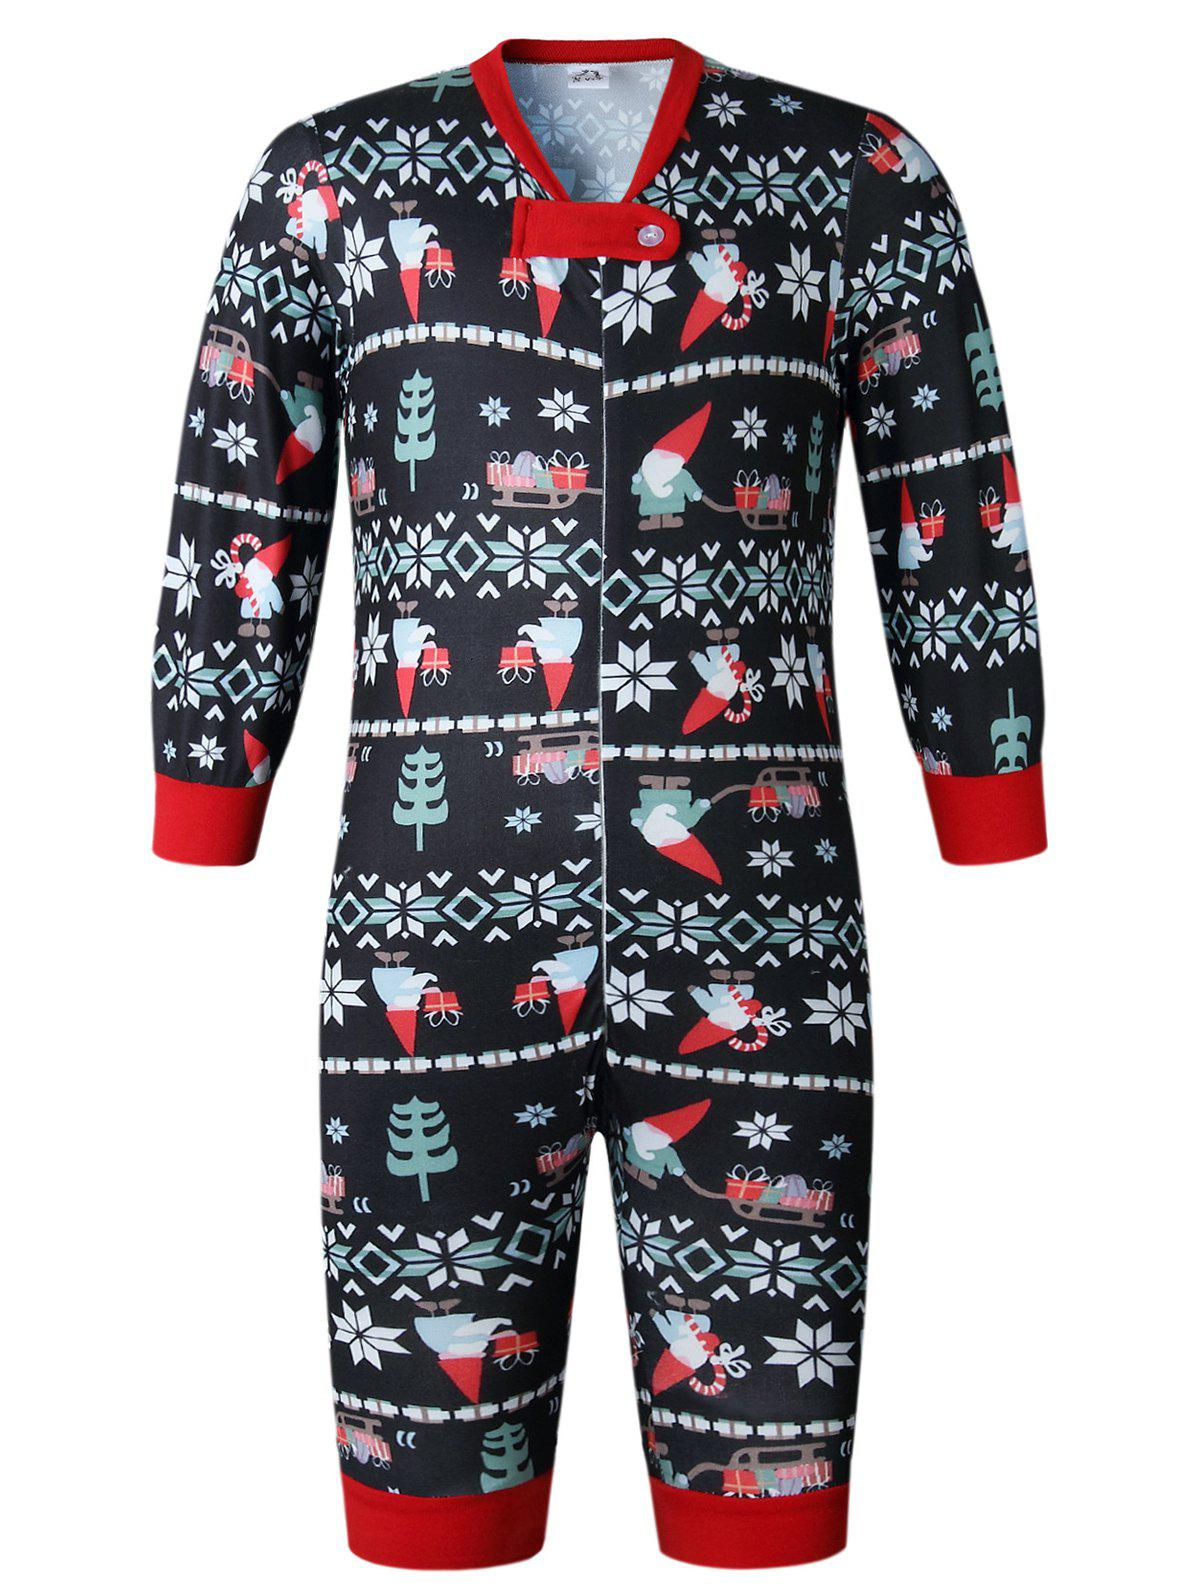 7ea9832c15 Buy Christmas Long Sleeves Casual Print Family Pajama Sets Parent-Child  Home Suit Pyjamas